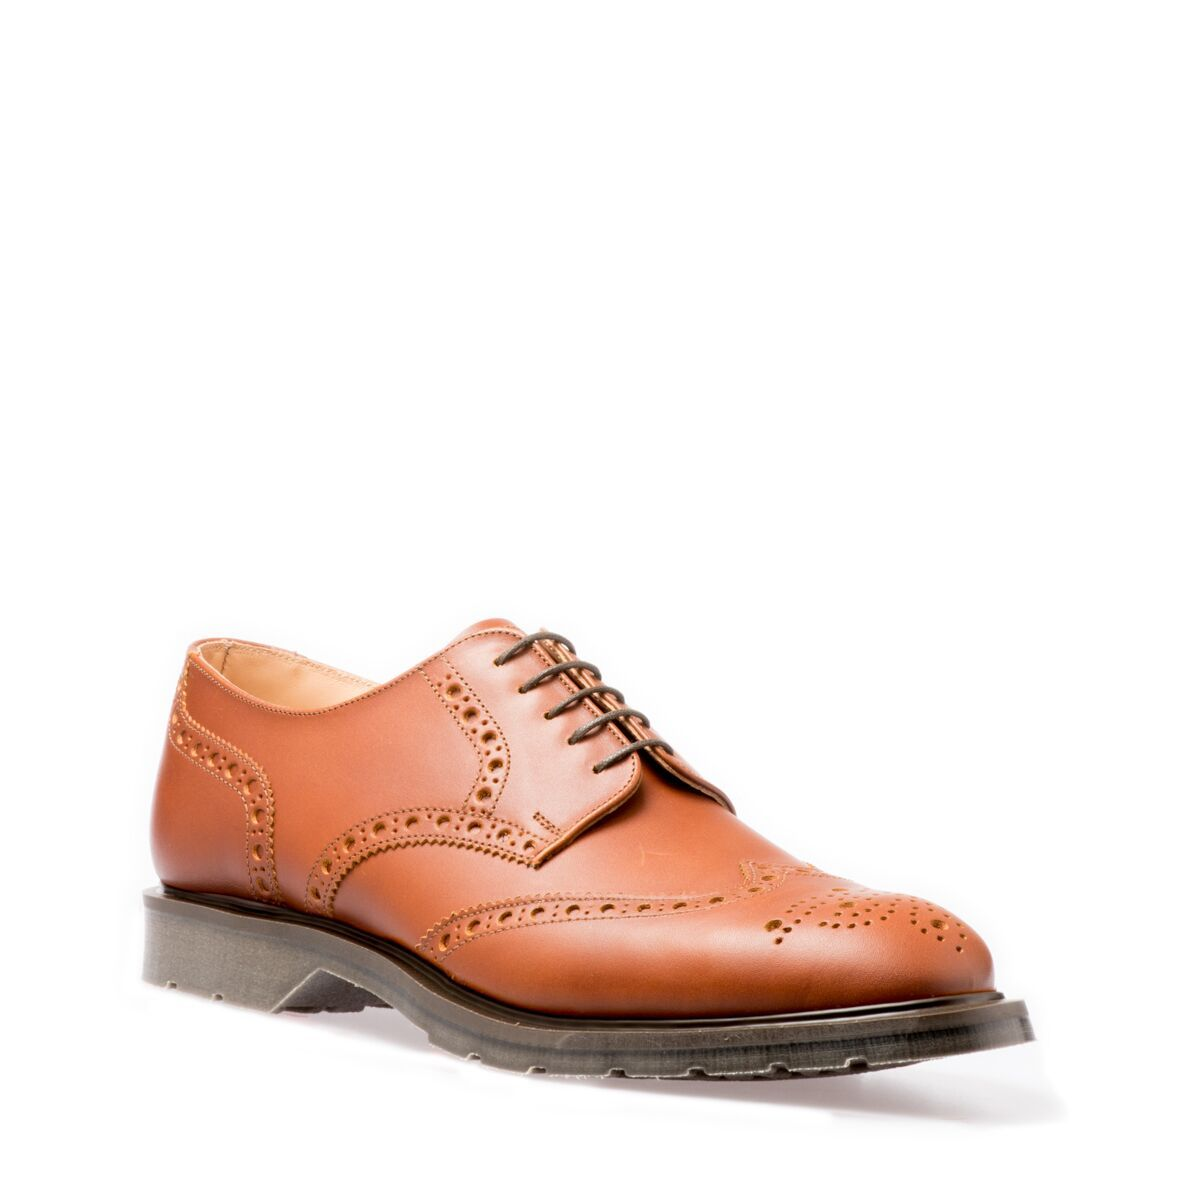 Solovair 4-eye Gibson Brogue in Chestnut